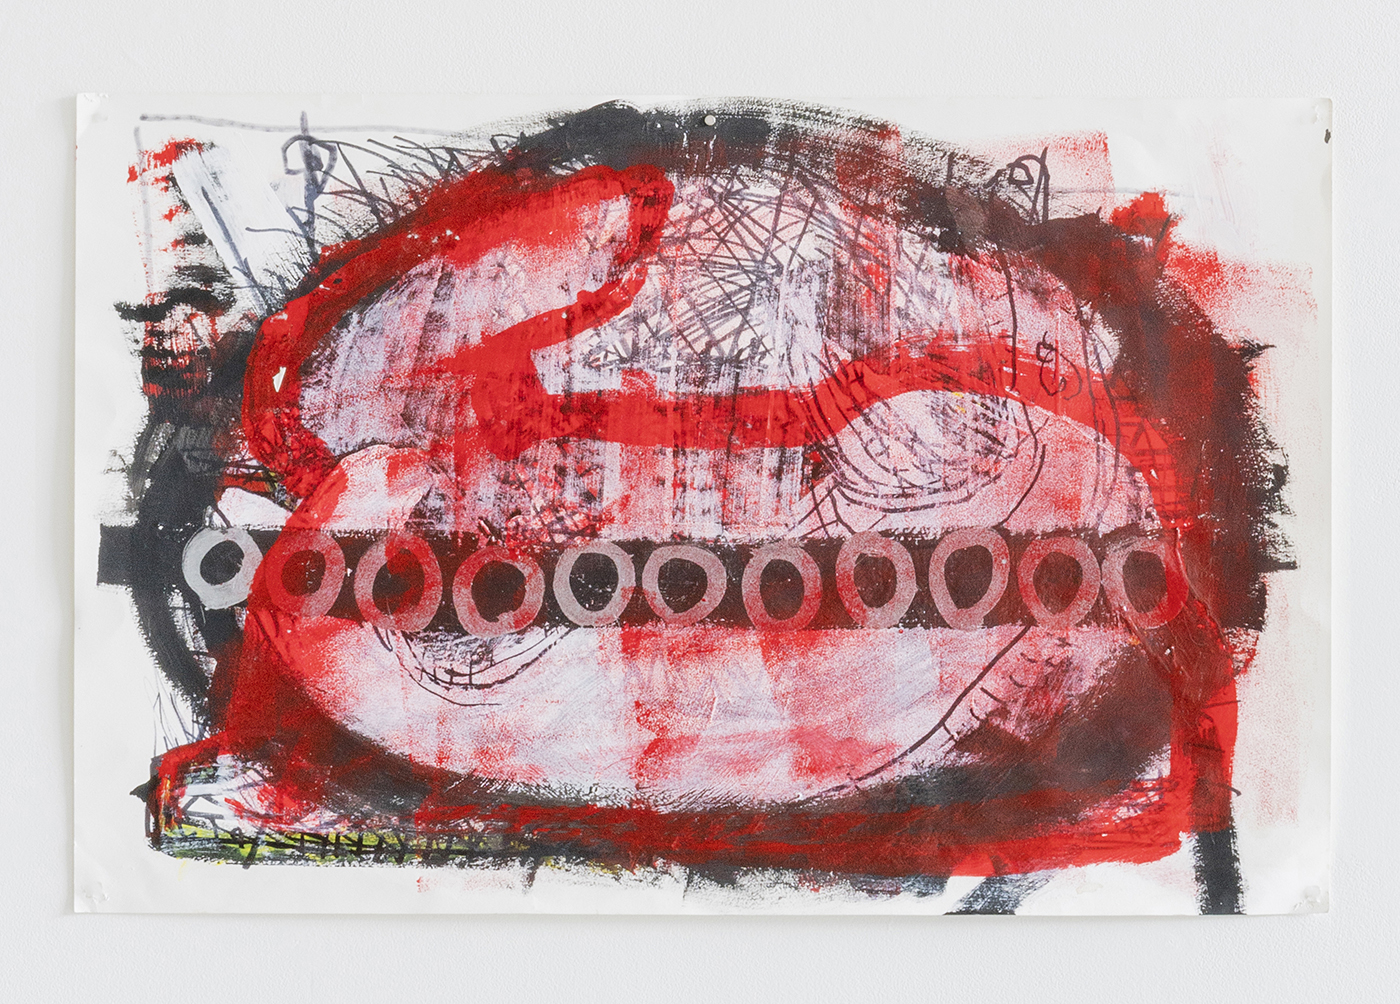 Luchs_Red_Rabbit_1_on_paper_26x40_2020_DESOUSA_GALLERY_web